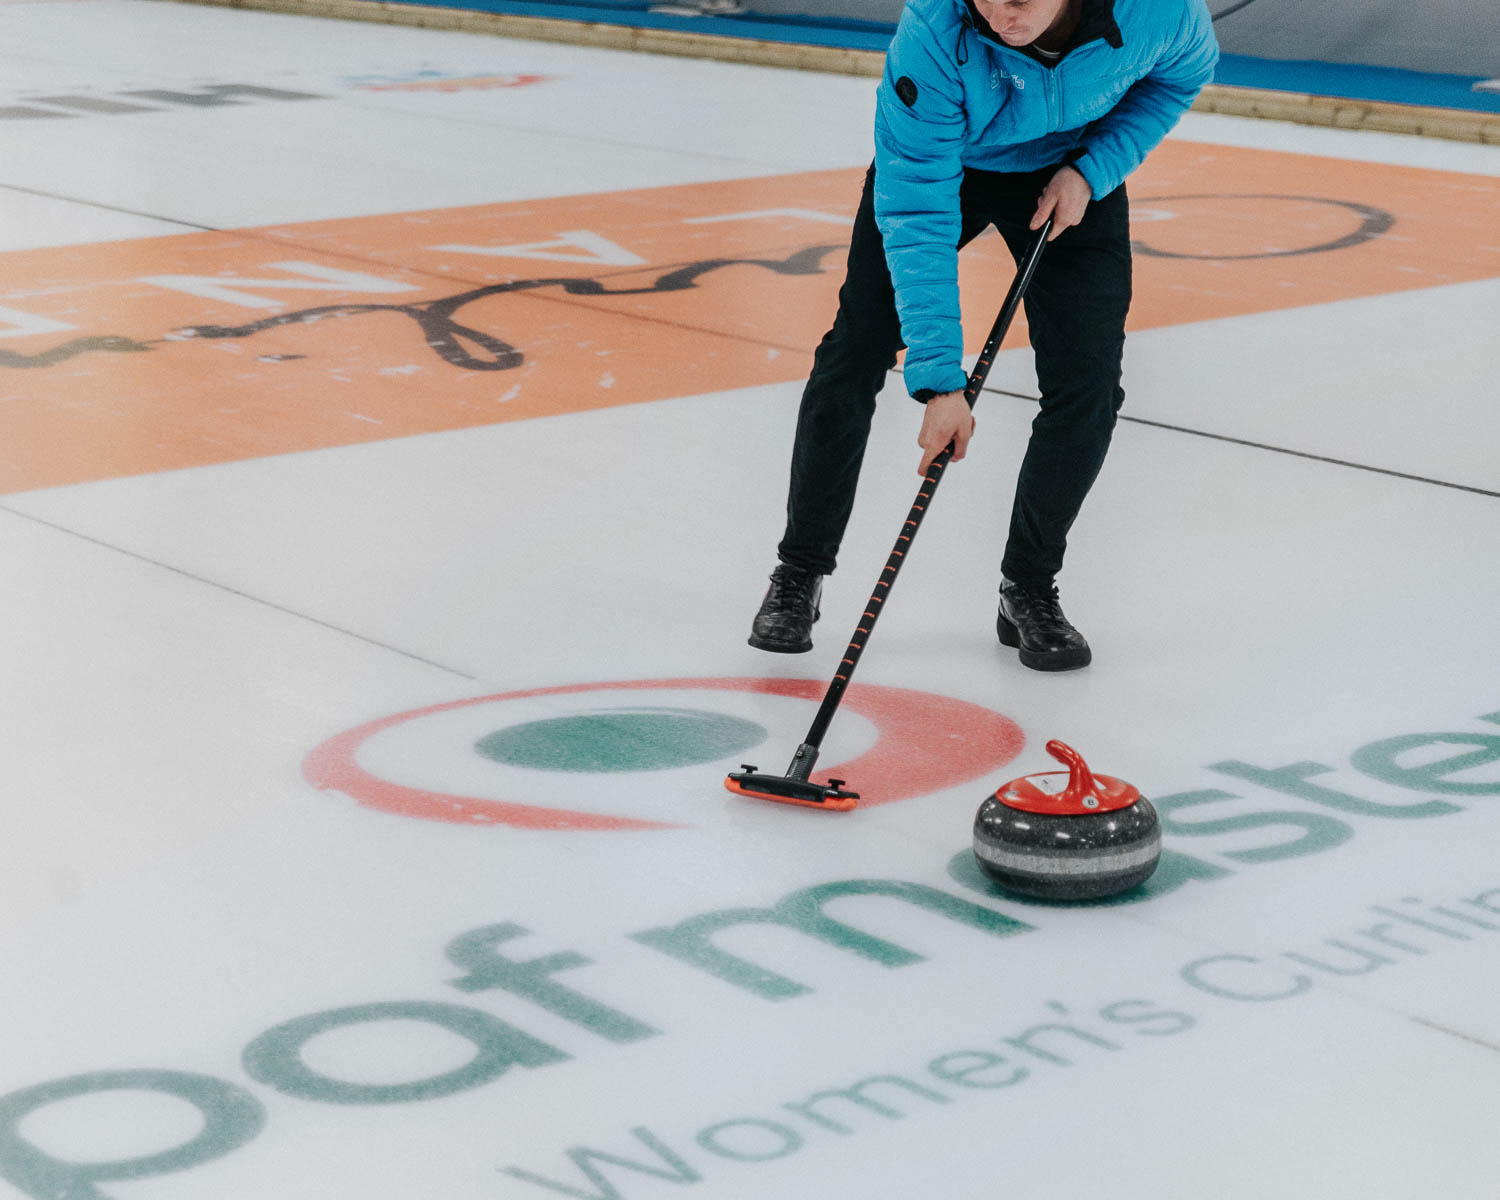 Curling in Eckerö |Things to do in the Åland Islands